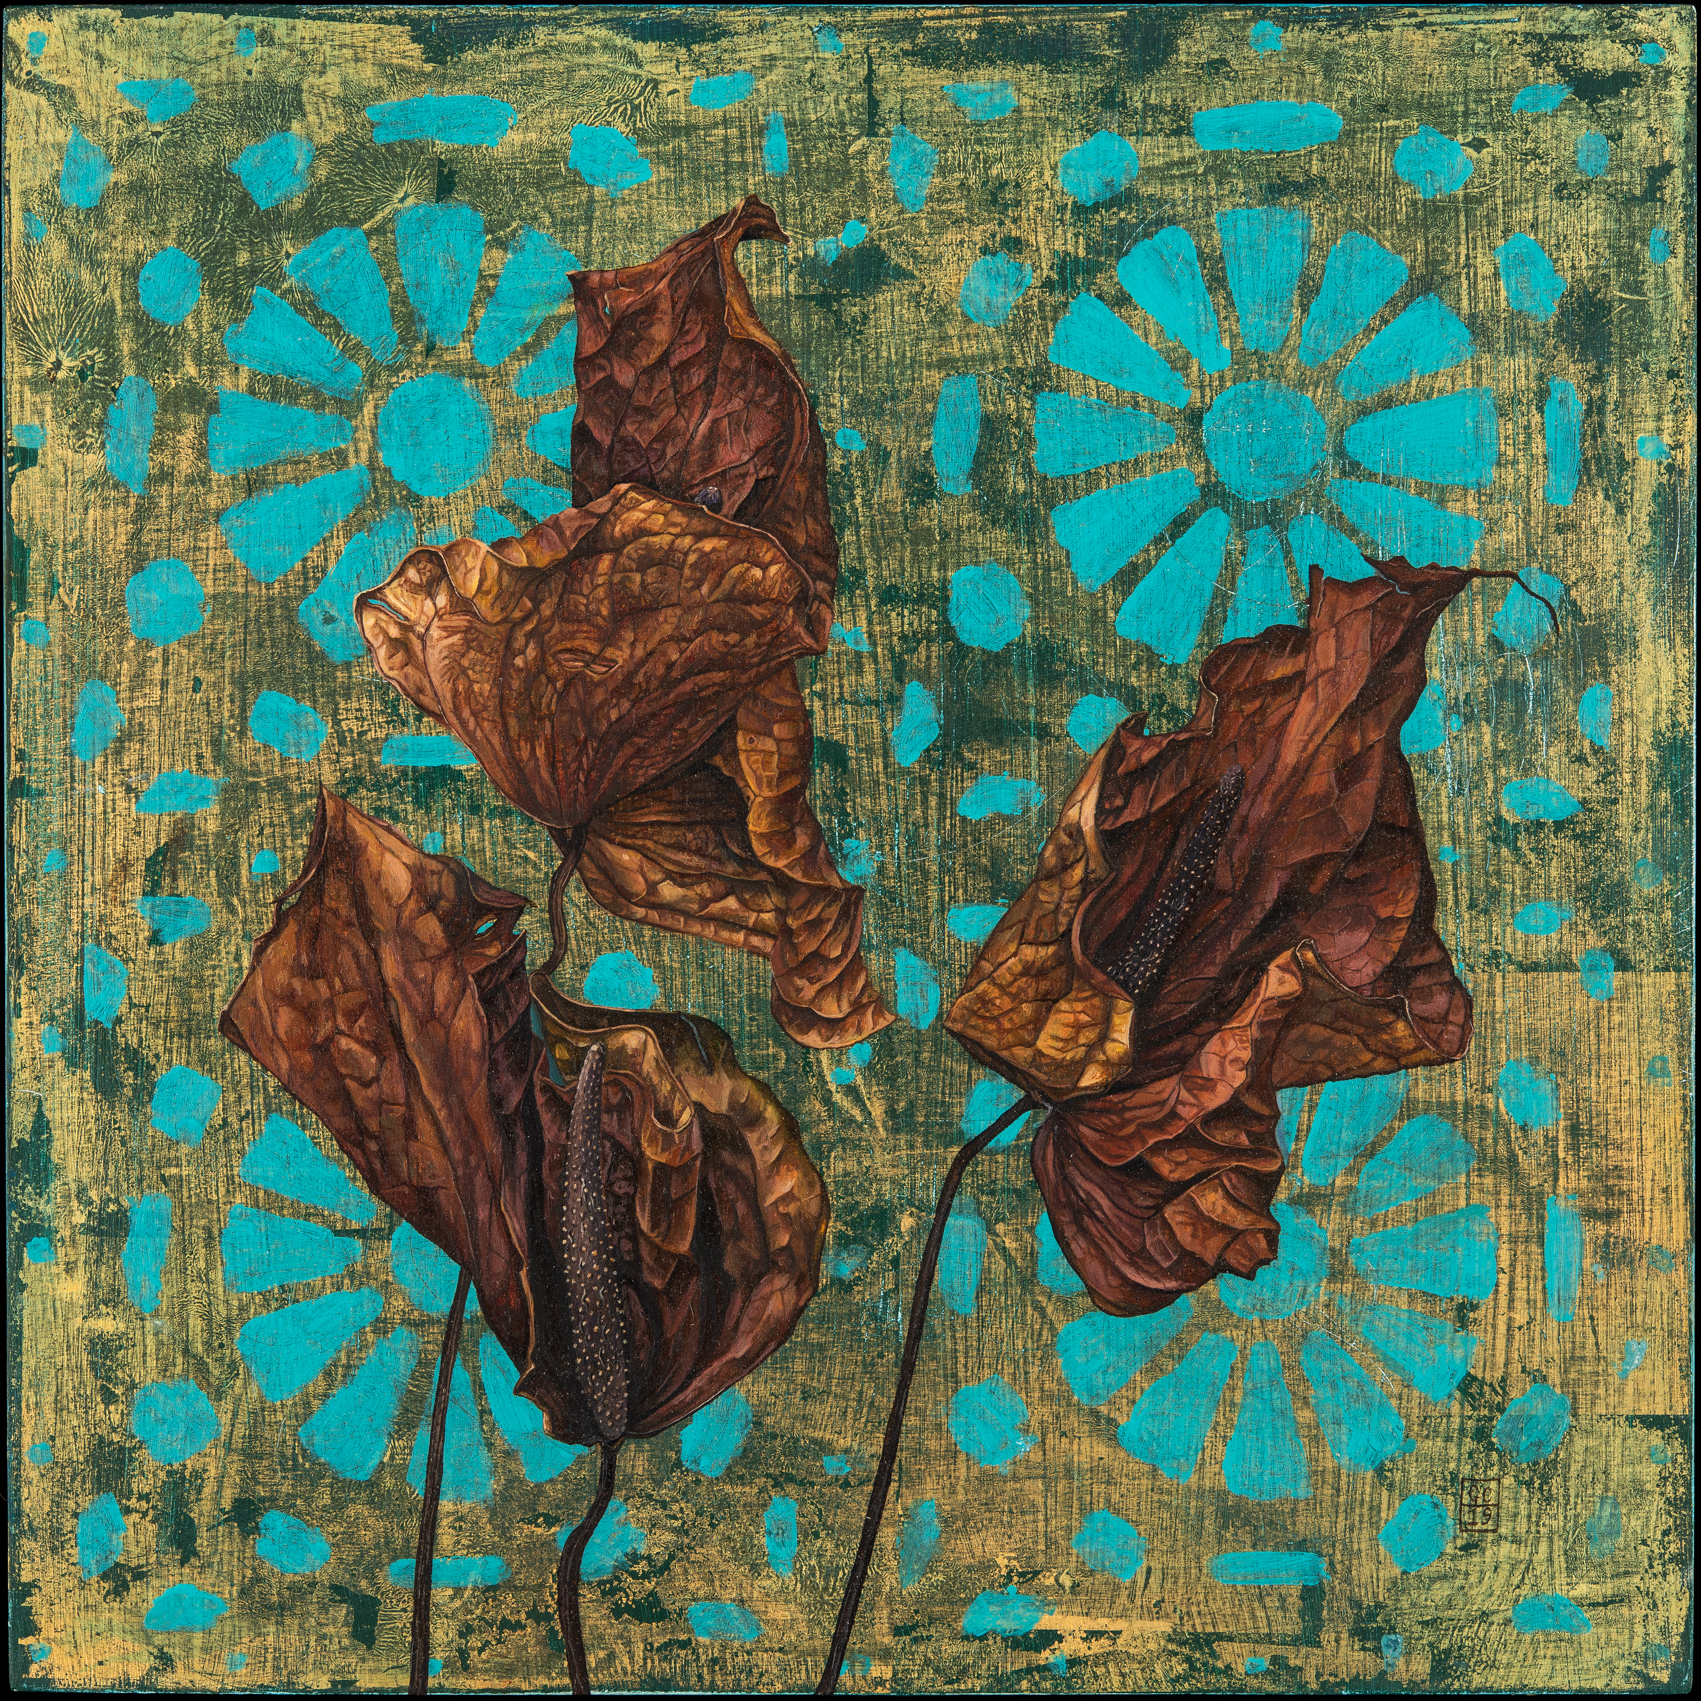 'Lilies', Oil and Metal Leaf on Panel, 30x 30cm